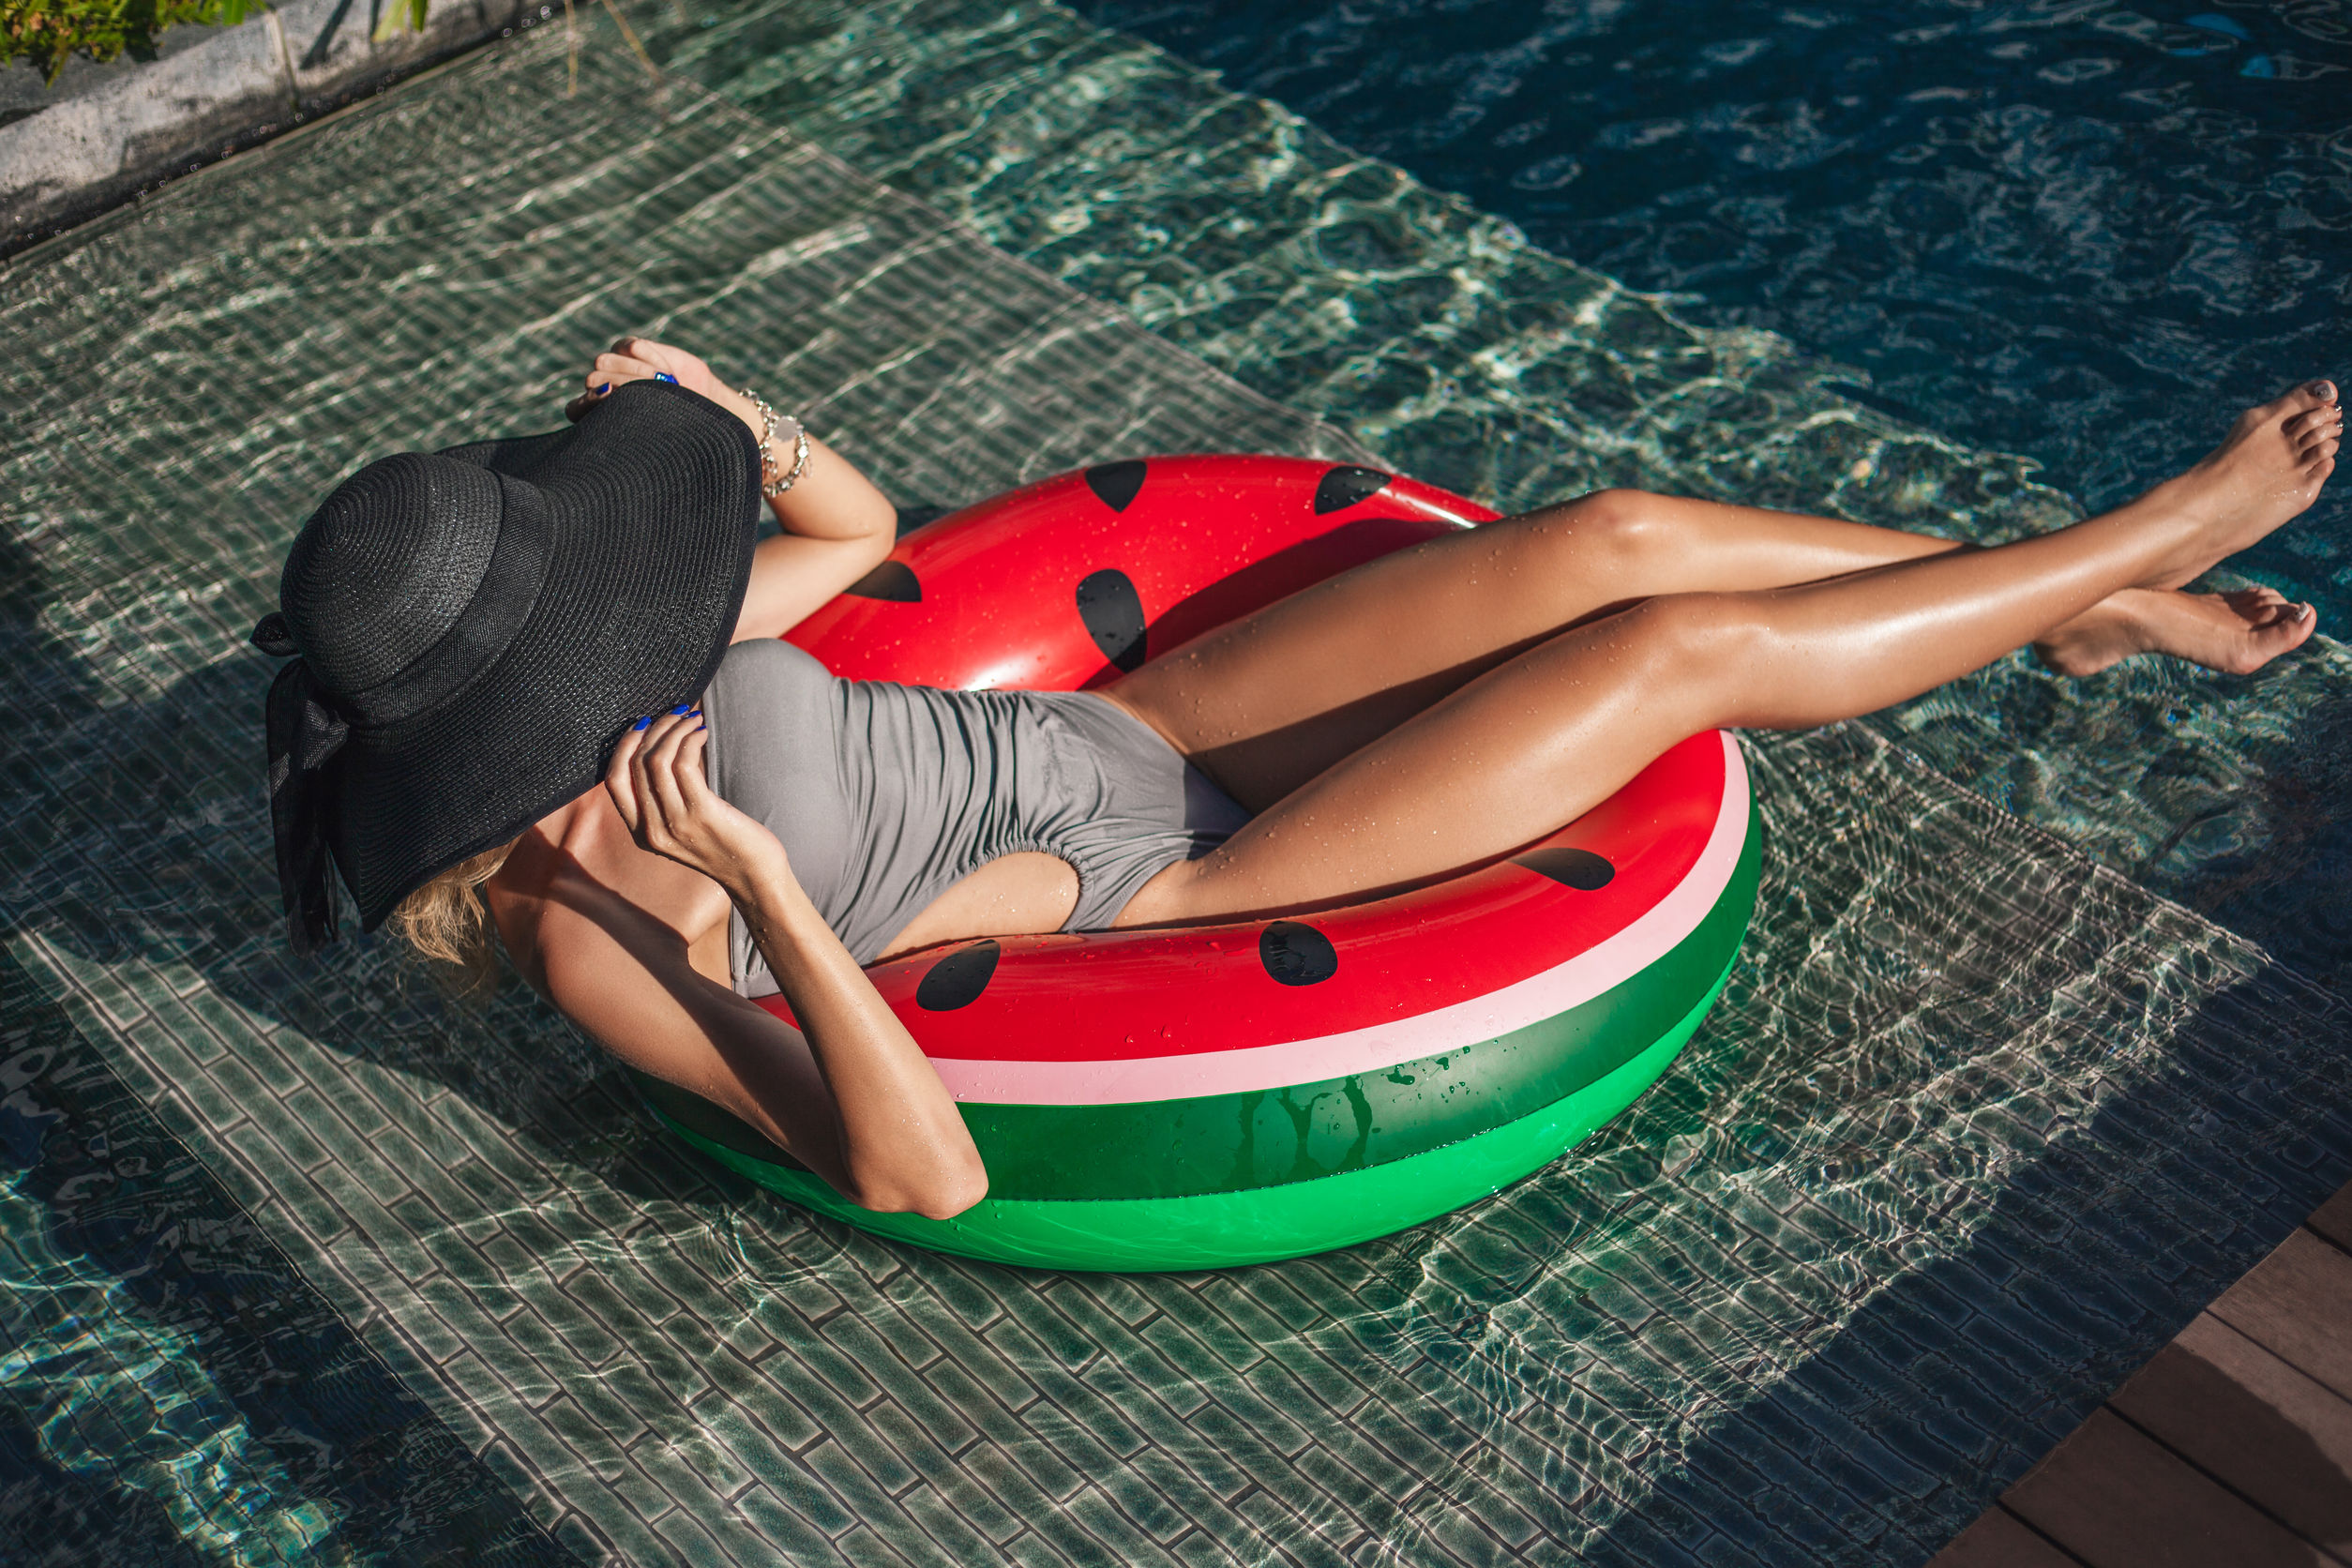 beautiful woman sitting in inflatable ring at poolside of hotel